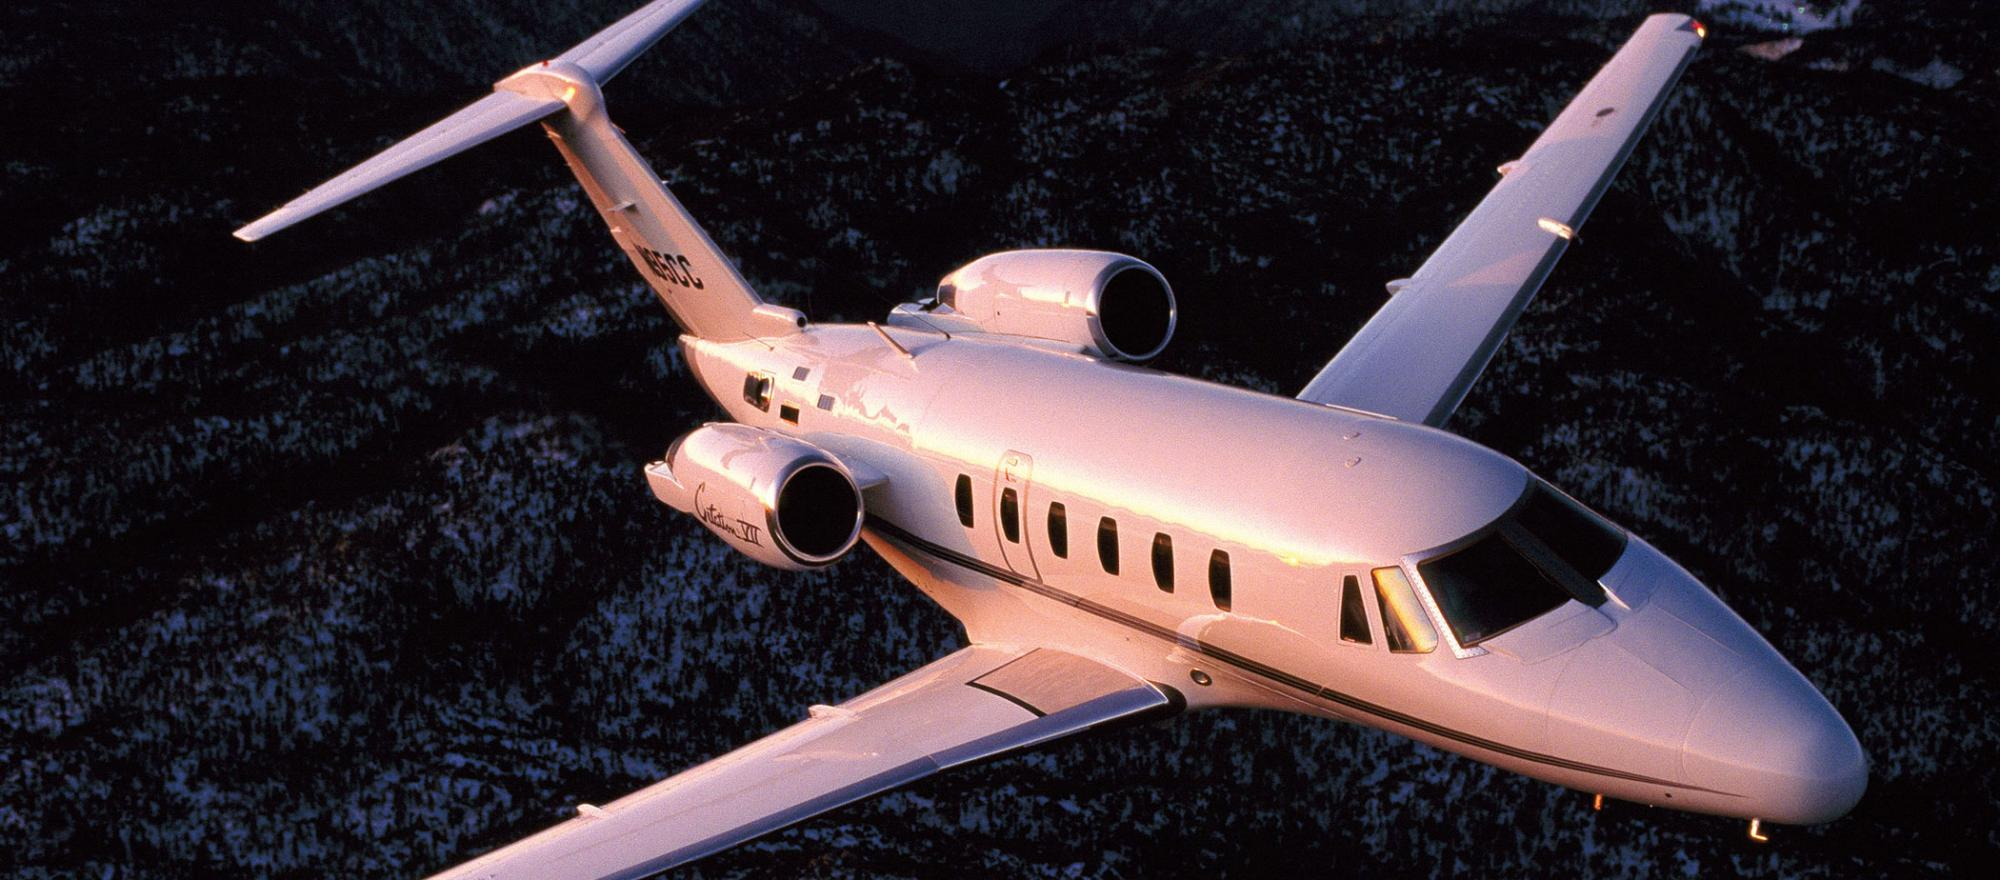 Citation VII charter services